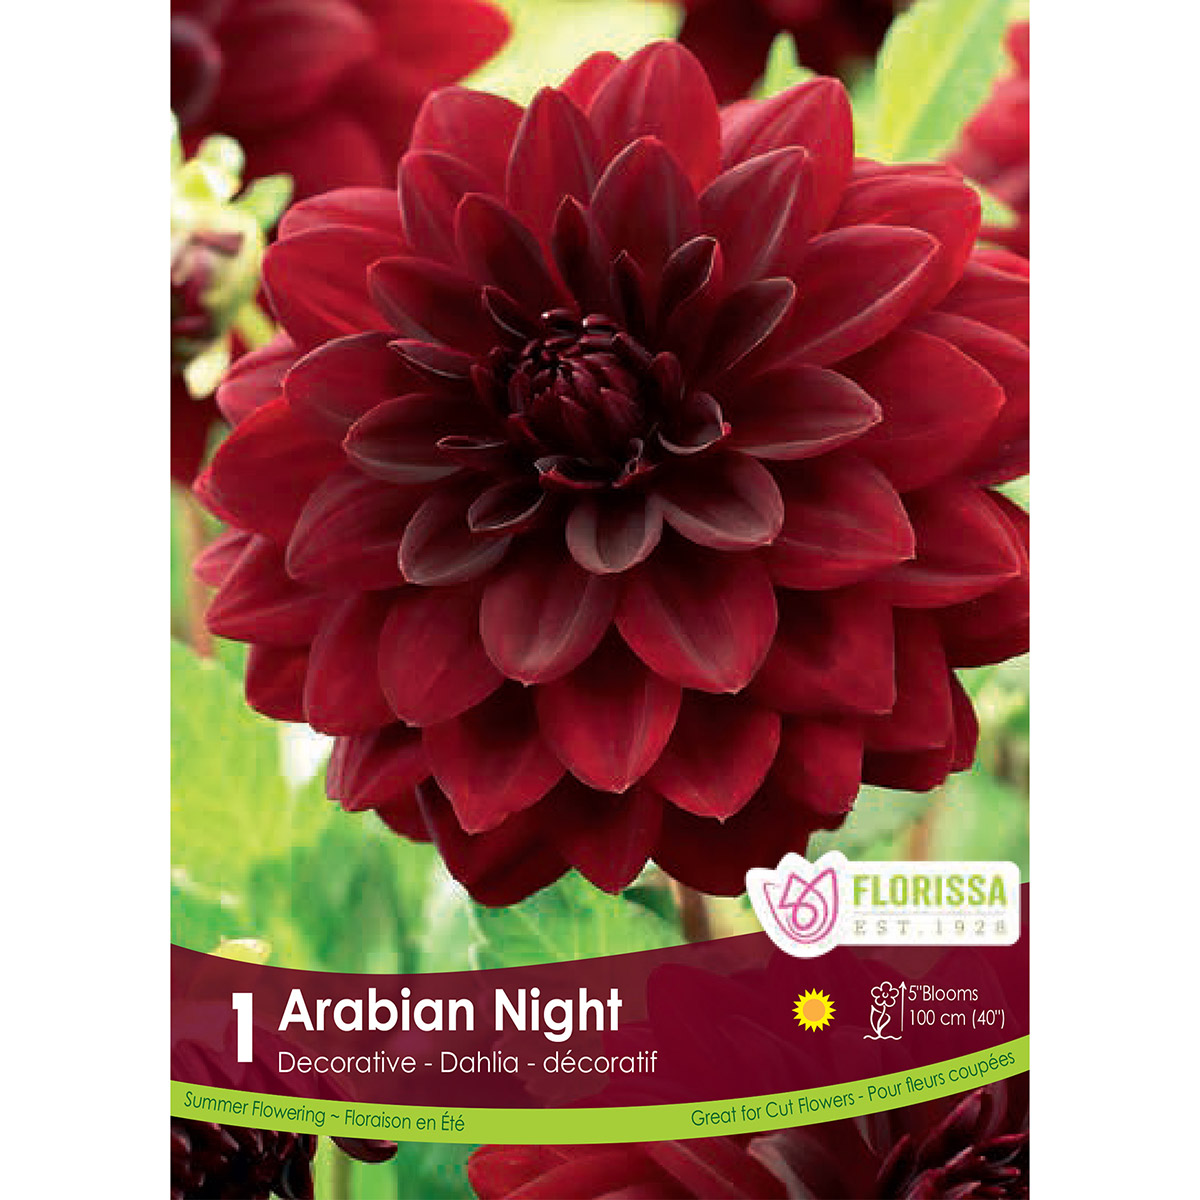 Dahlia 'Arabian Night' Tuber